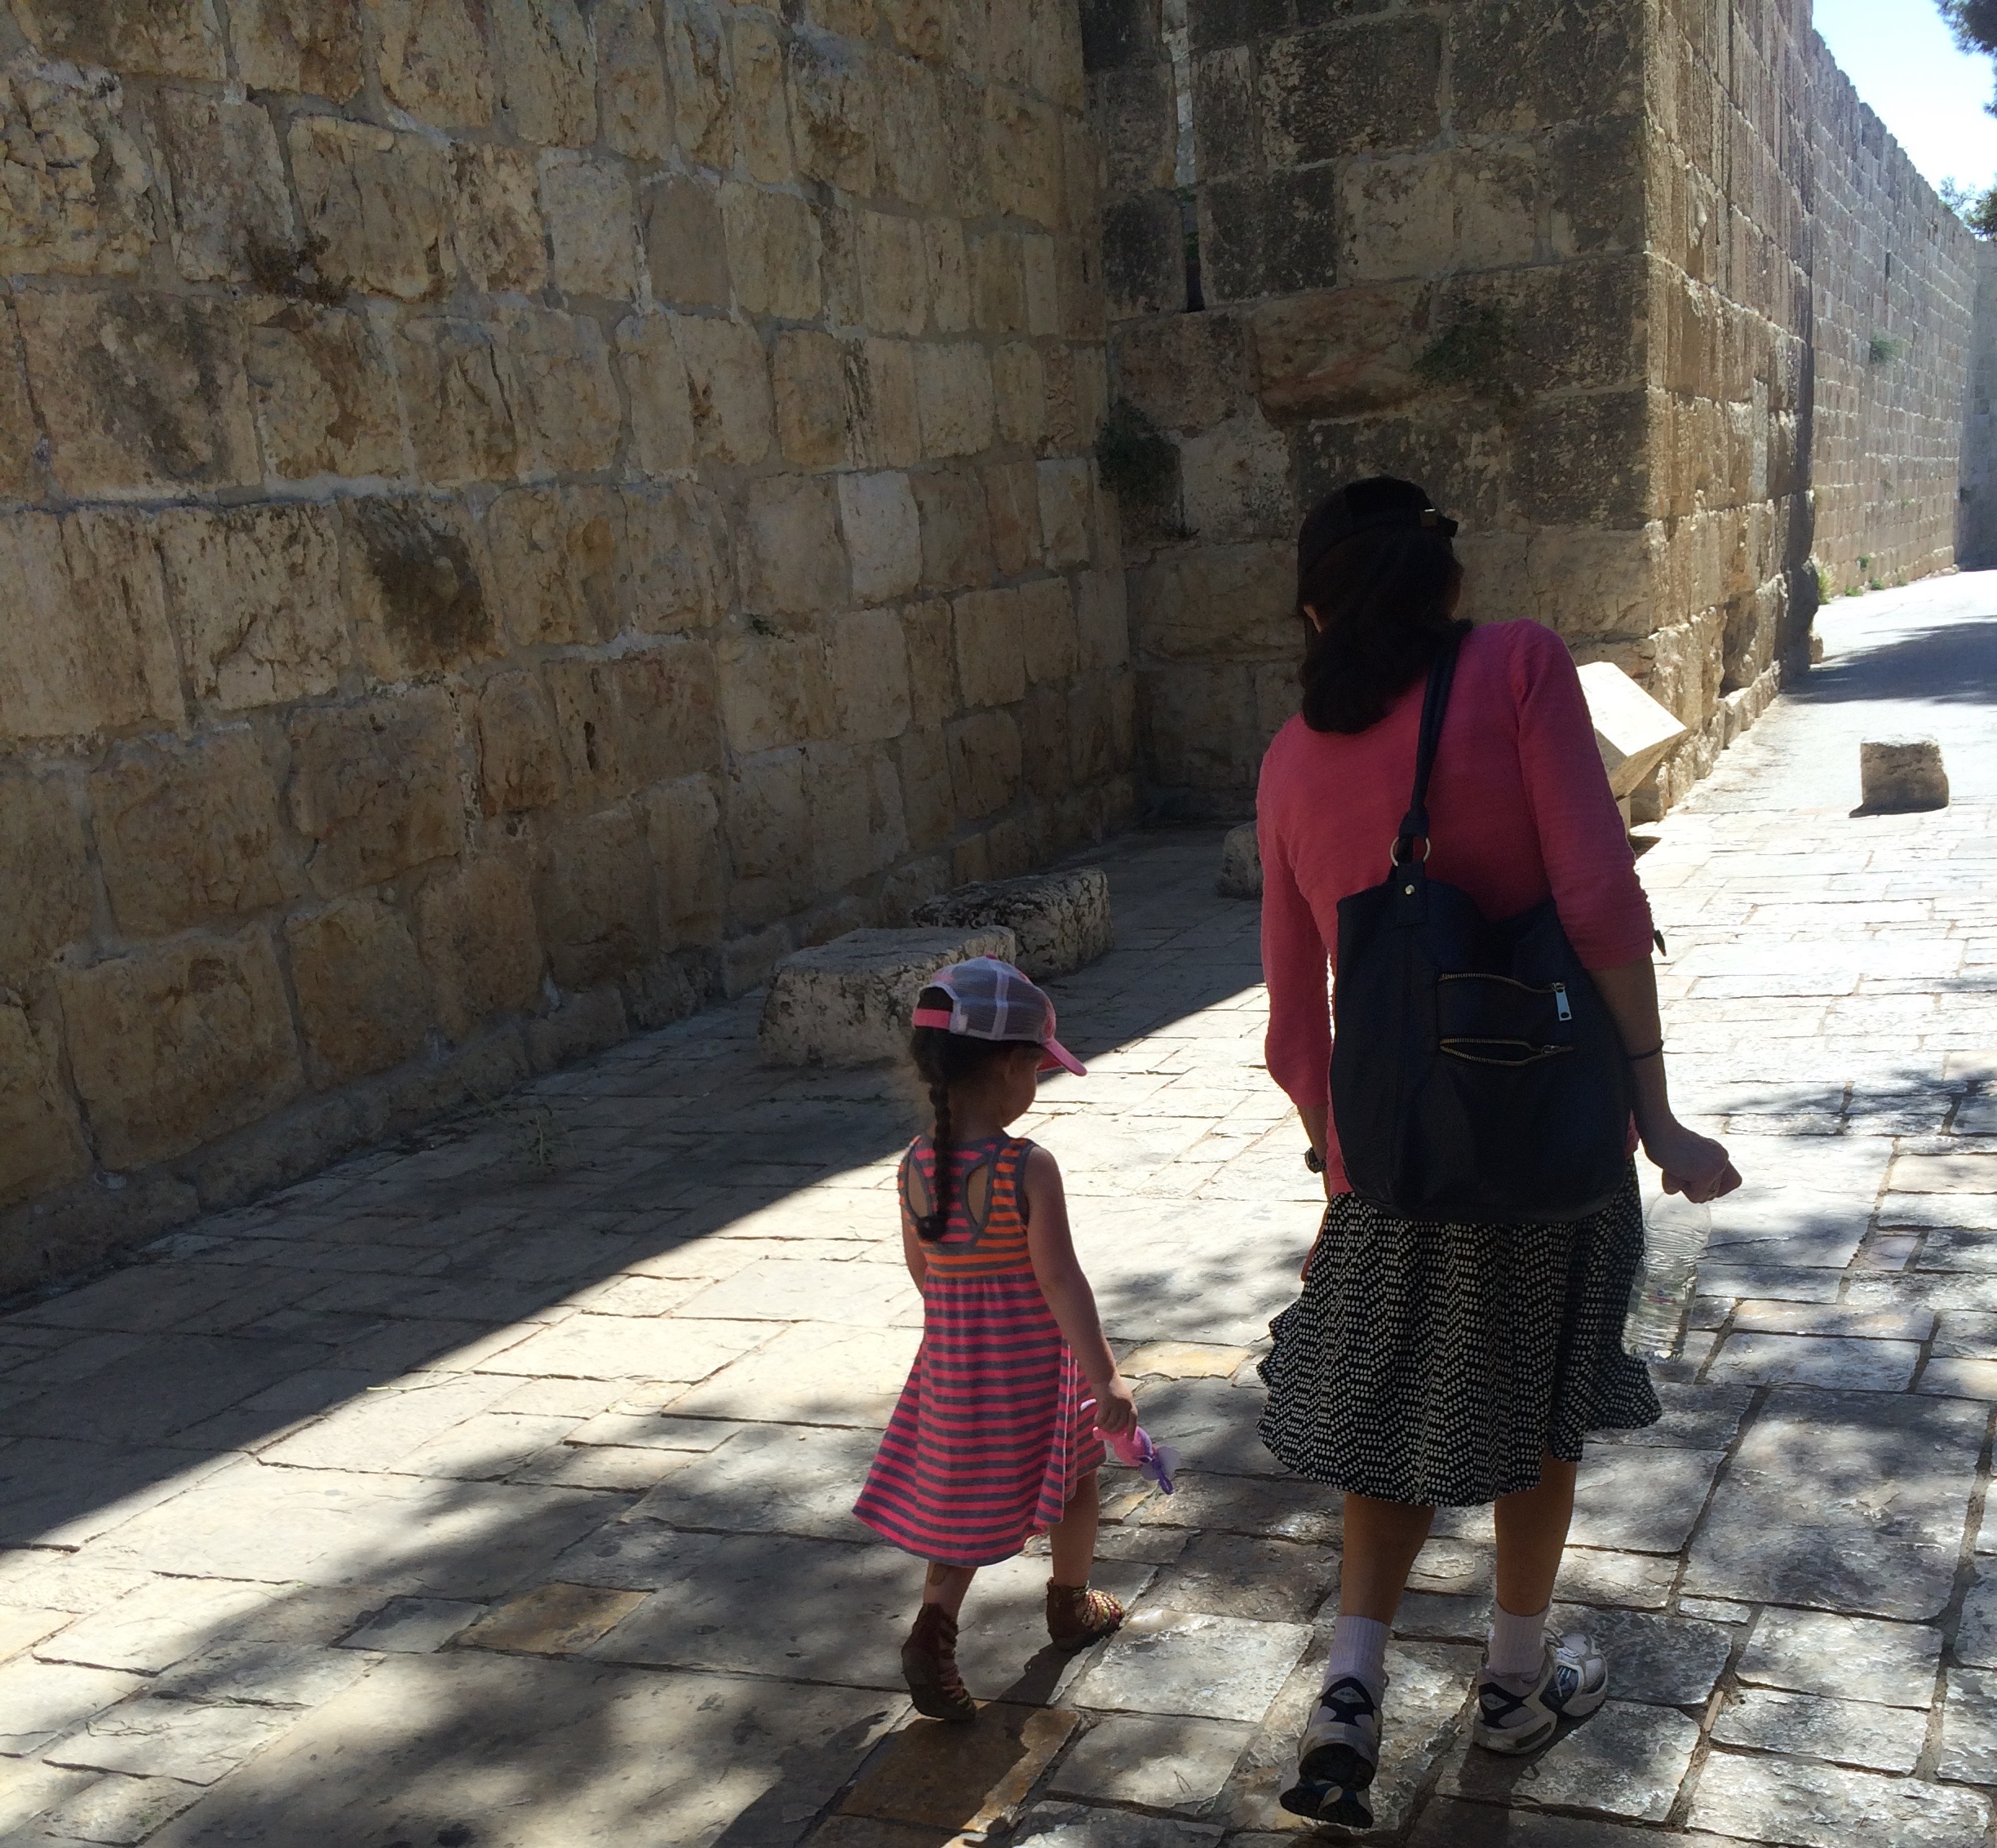 Karen and Lielle Meital walking through the Old City. This is the first time Karen and I have been in Israel with our children and grandchildren.